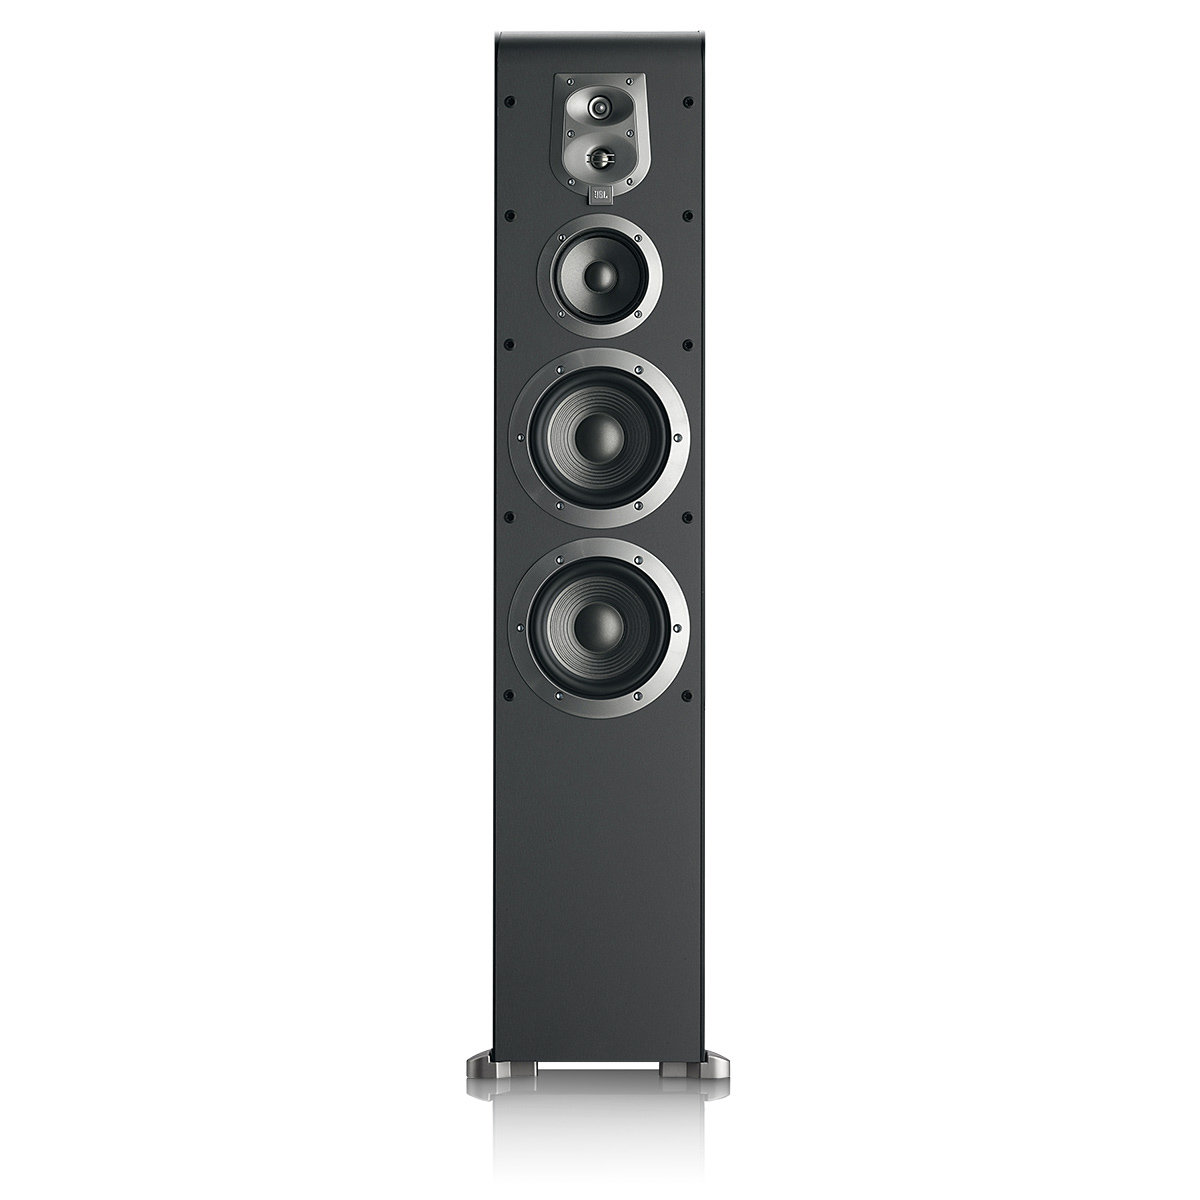 Amazon.com: JBL ES80BK 4-Way, Dual 170mm 6-Inch Floorstanding Speaker